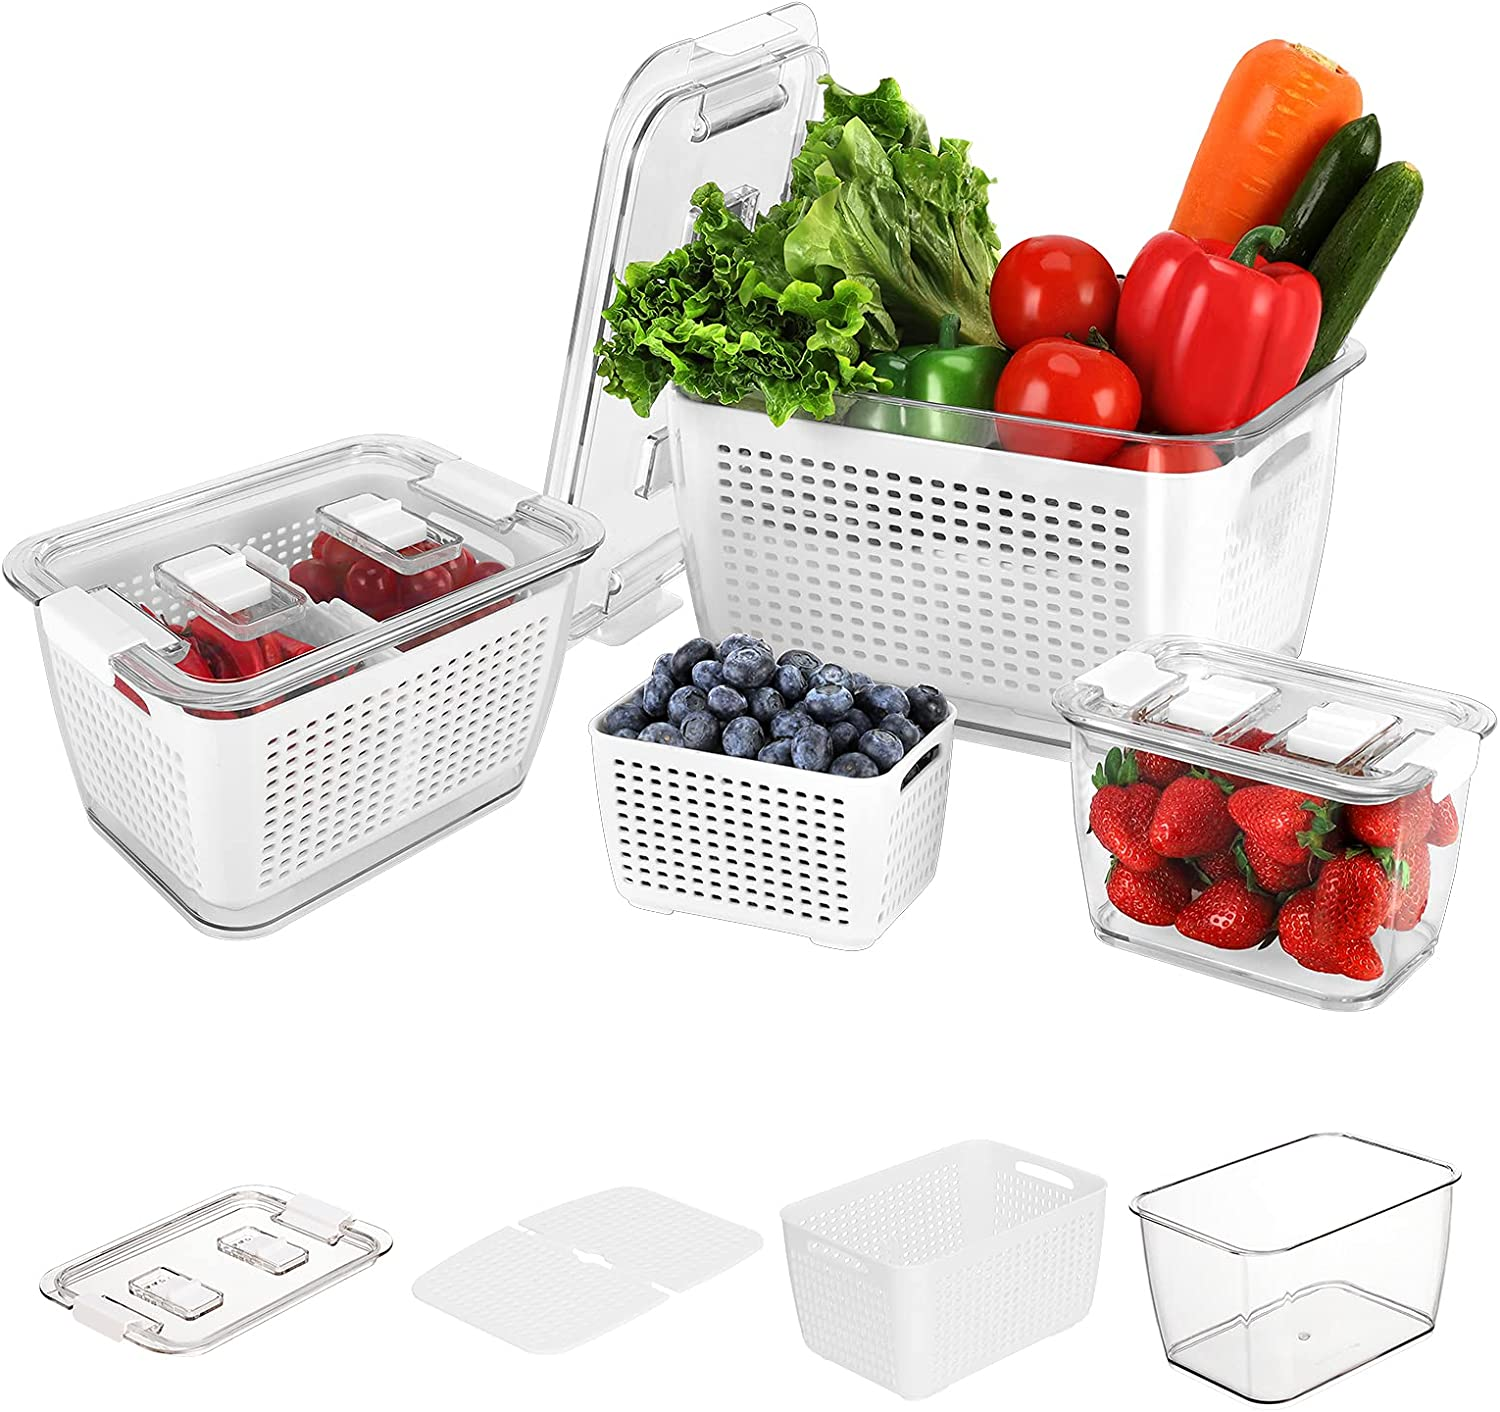 Fresh Food Storage Containers,3PACK Produce Saver Refrigerator Organizer Keeper Bins with Lids Vents,Adjust the Storage Space Freely, Removable Foldable Drain Tray for Berry, Fruits and Vegetables.